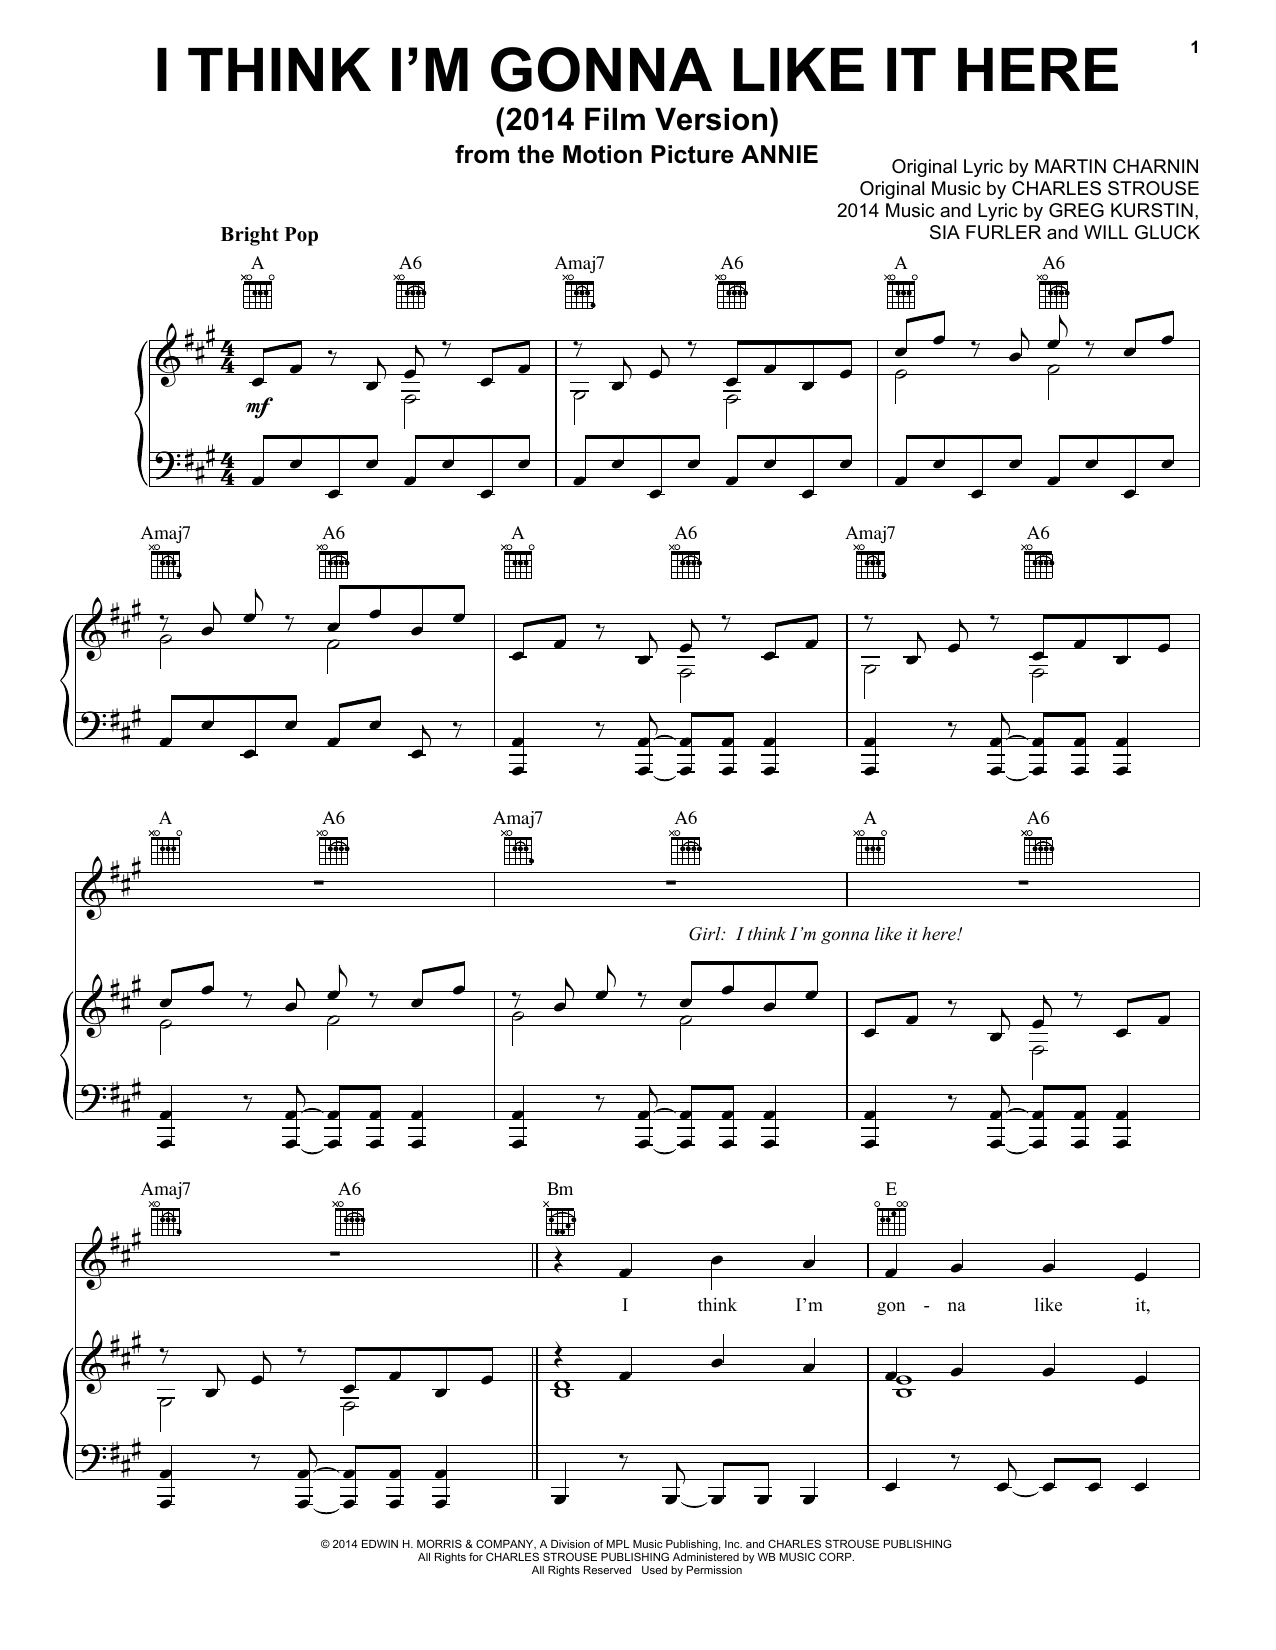 I Think I'm Gonna Like It Here (from 'Annie' 2014 Film Version) Sheet Music